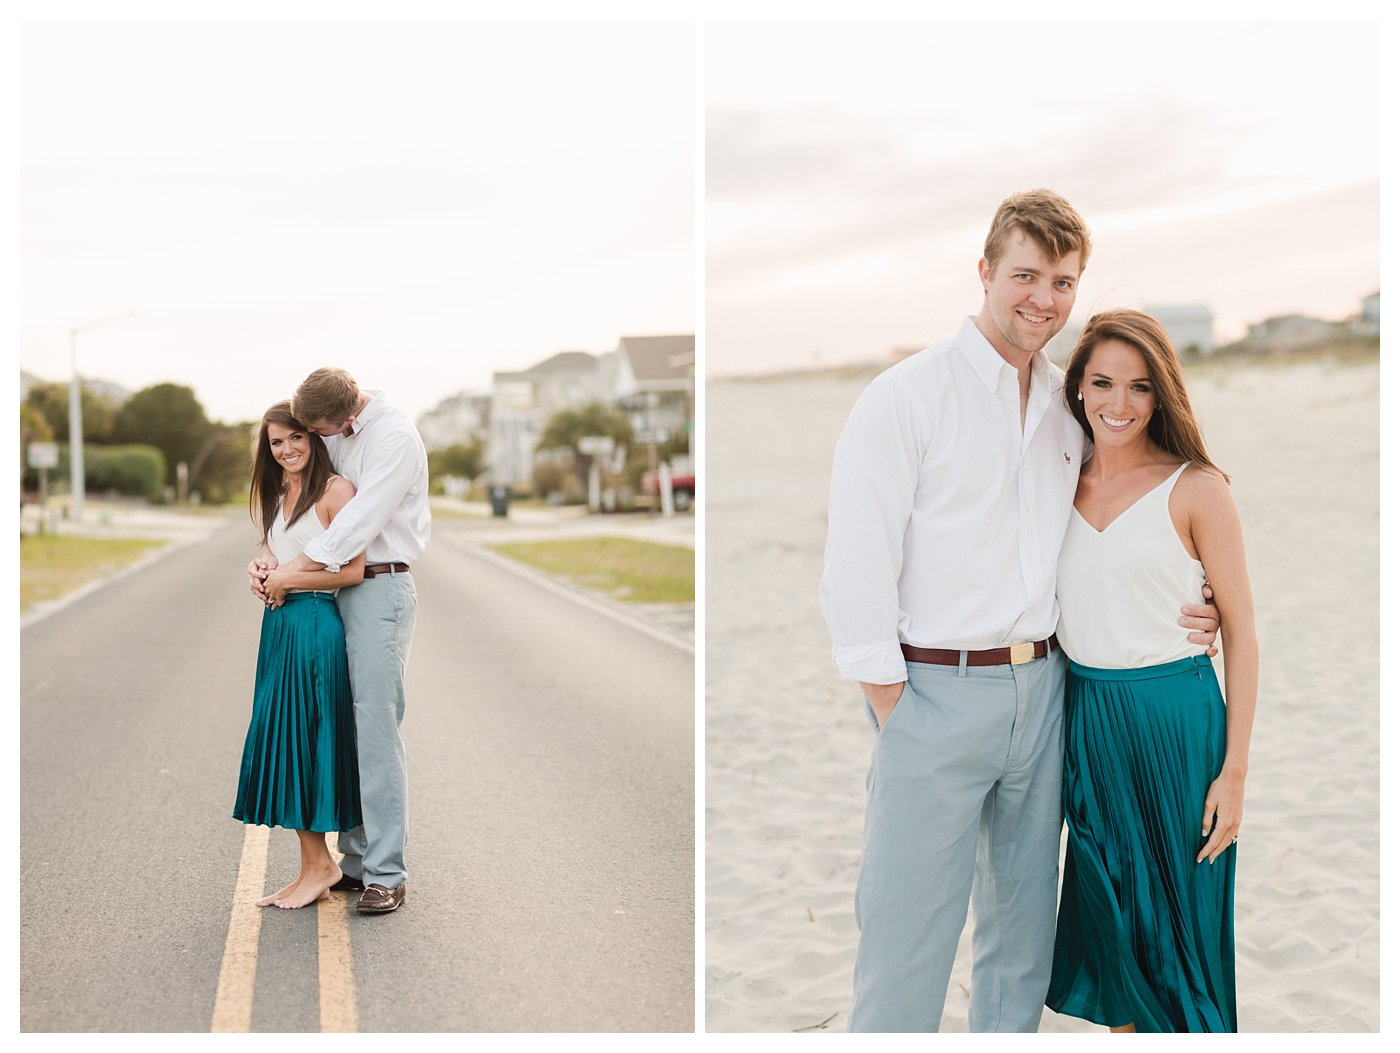 Ocean_Isle_NC_Beach_Coastal_Engagement_Session_Turqoise_White_Candlelit_0012.jpg